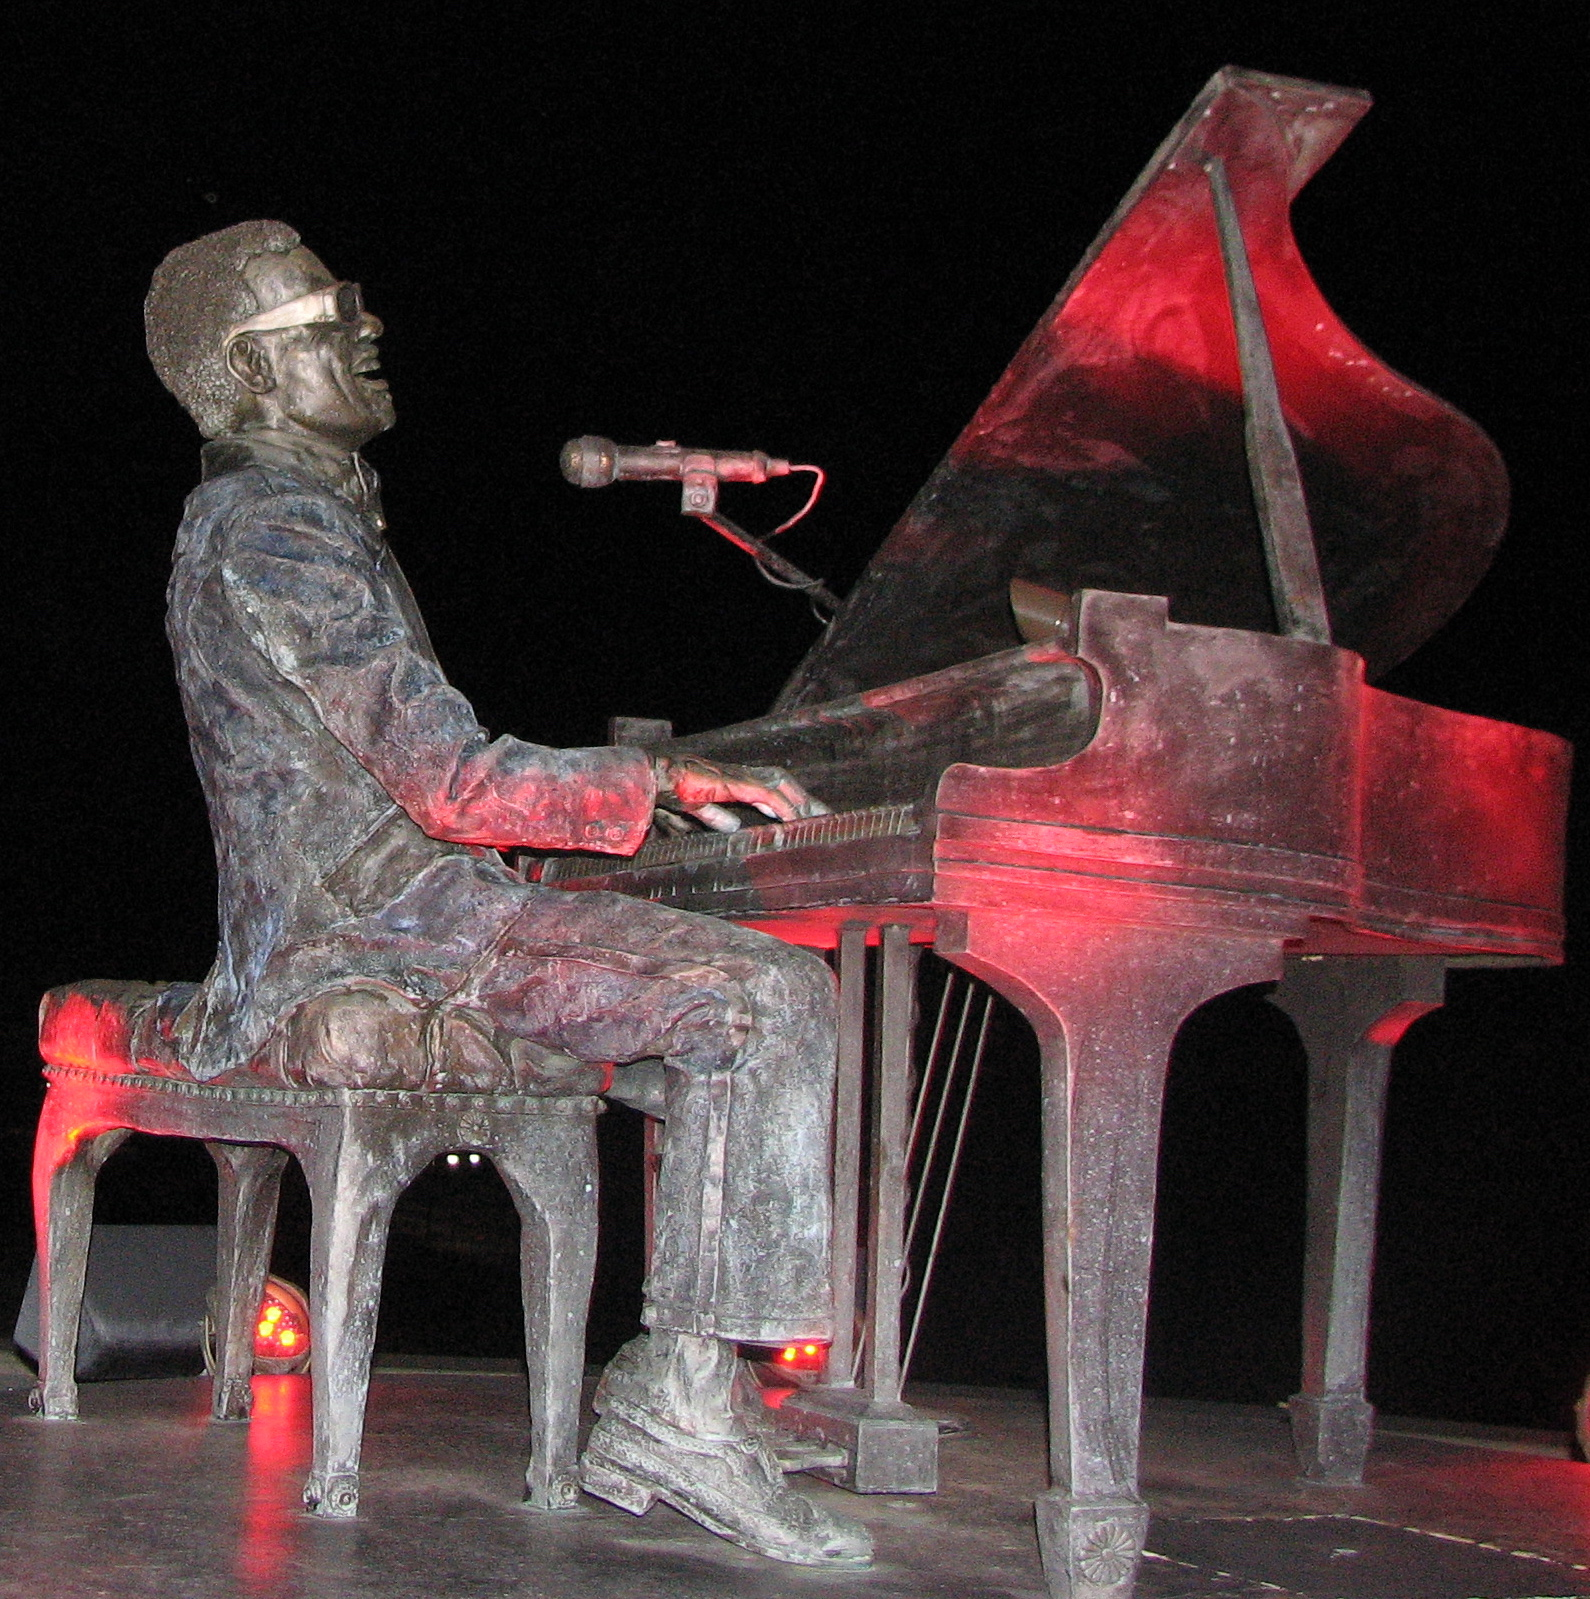 Ray Charles sculpture at night, one of the free things to do in Albany GA